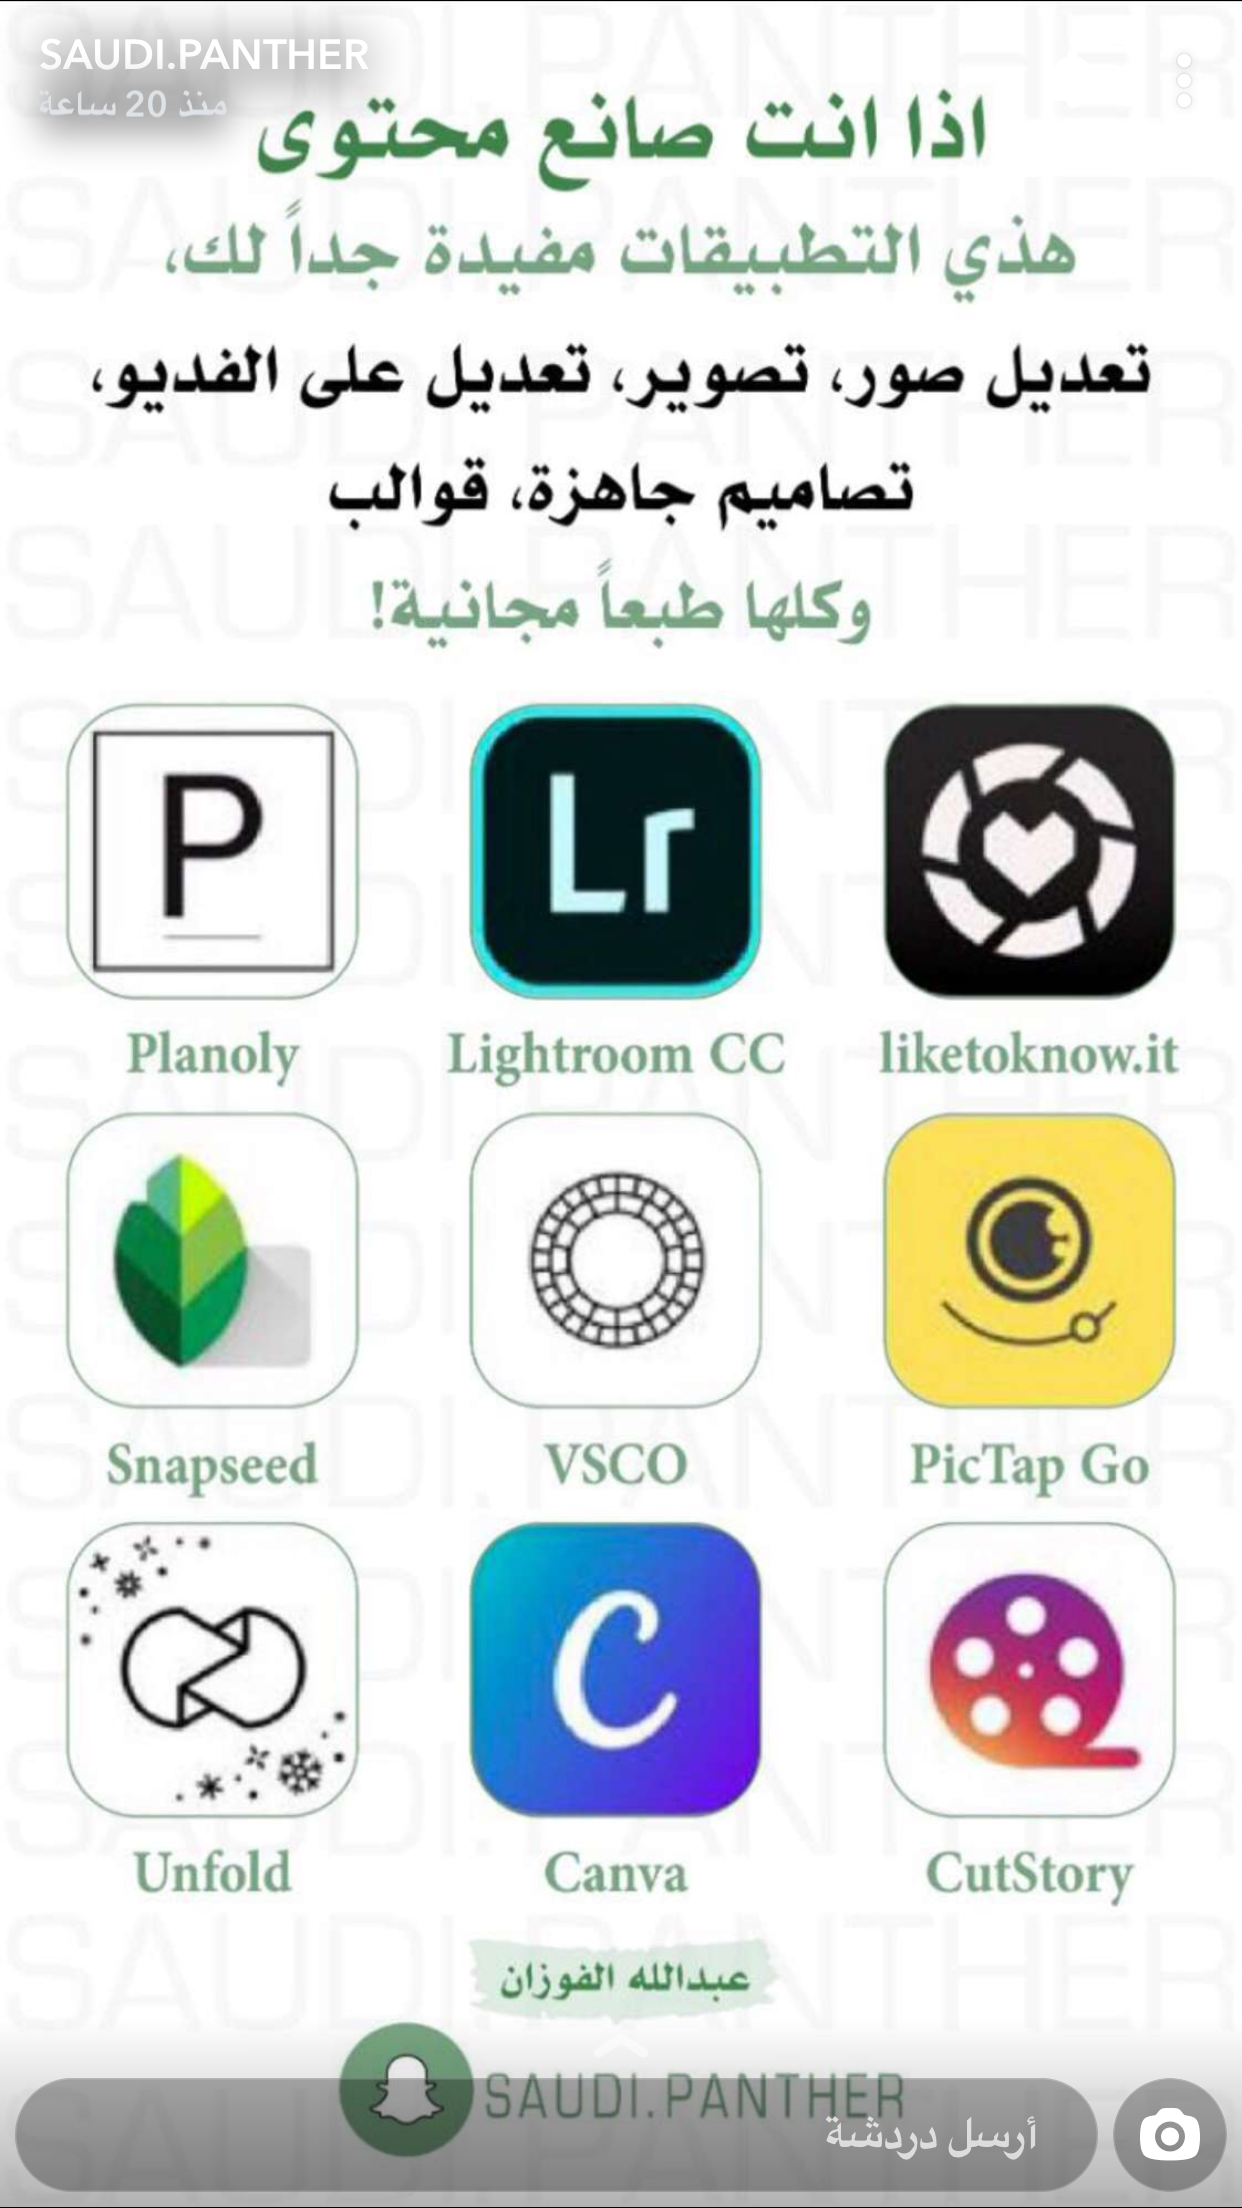 Pin by Maryam on Program Iphone app layout, Application